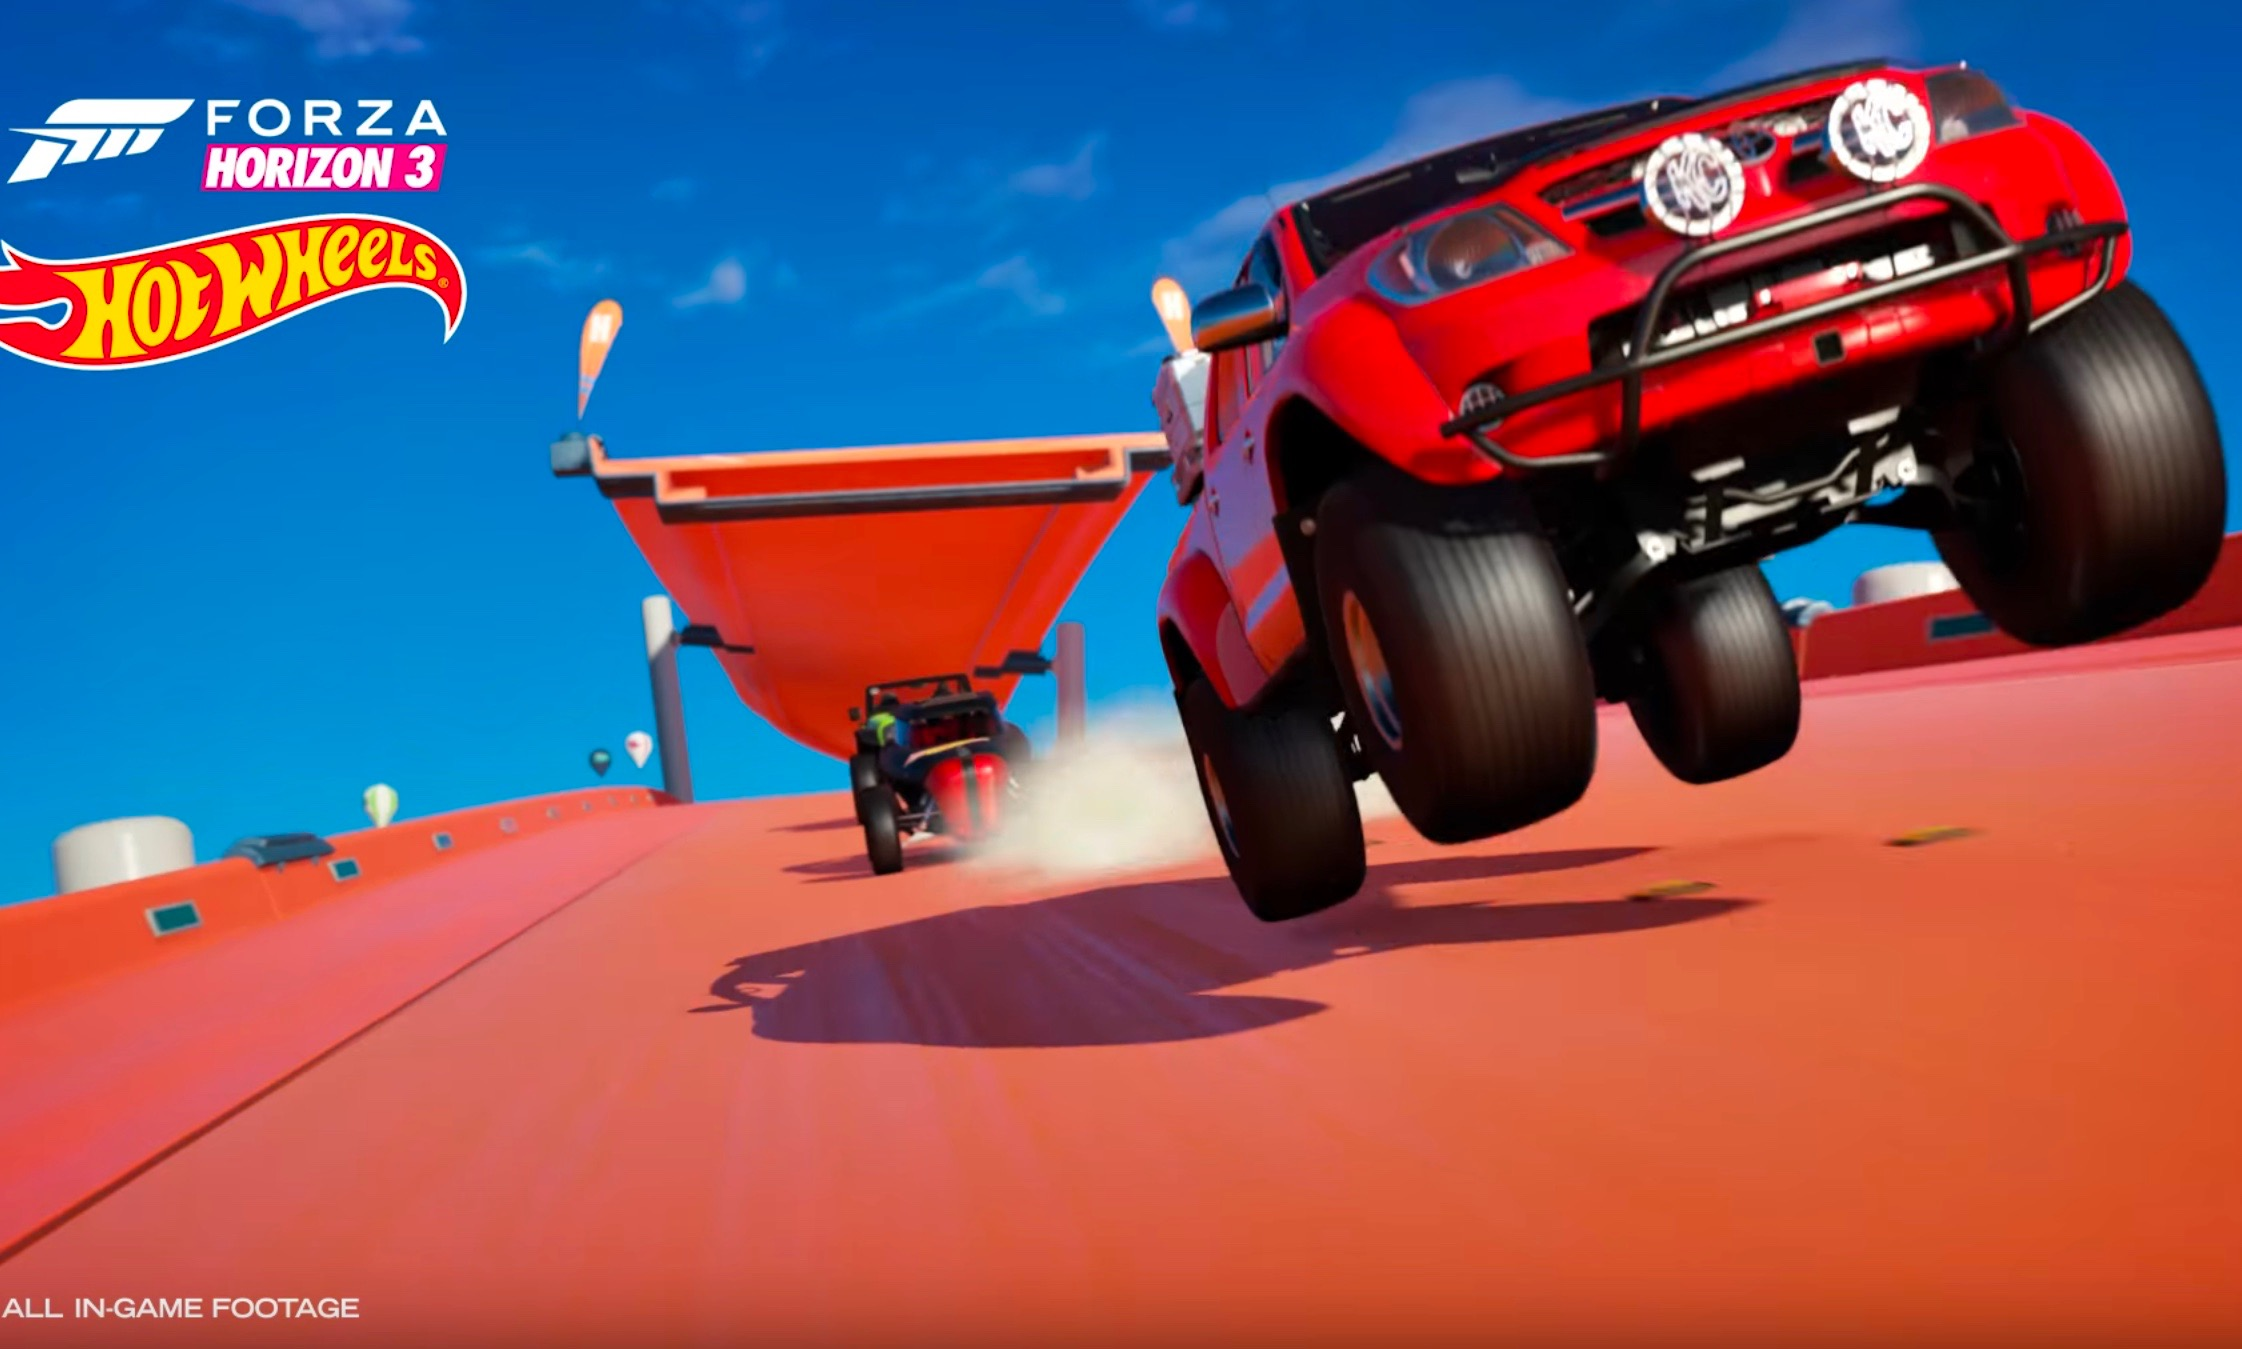 forza horizon 3 gets hots wheels expansion pack video. Black Bedroom Furniture Sets. Home Design Ideas